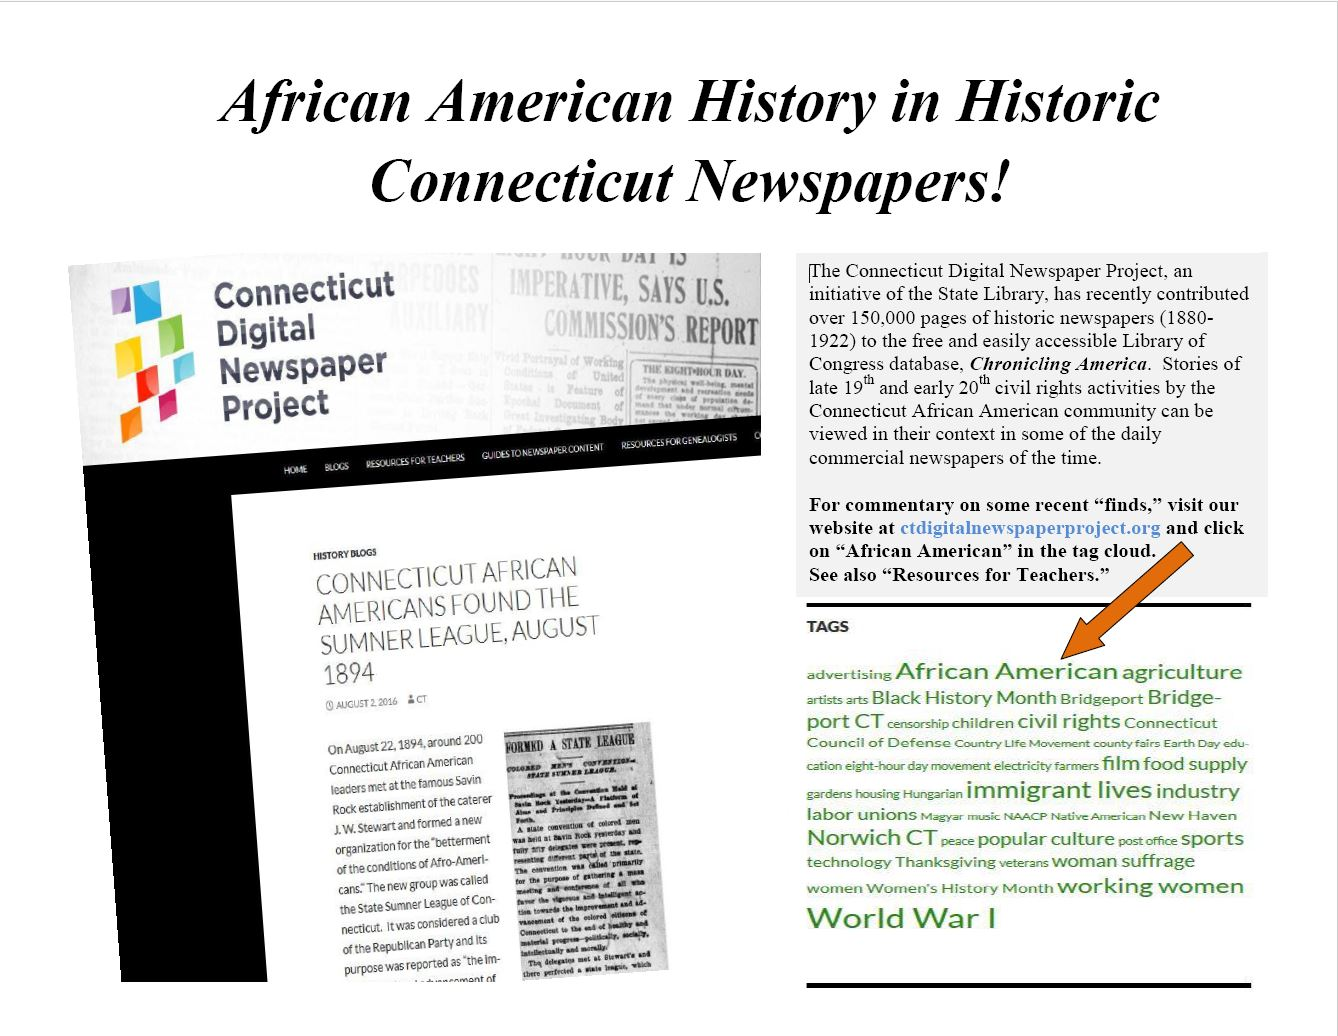 Picture of tag cloud with link to blogs and topic guides dealing with African American history in historic CT newspapers.